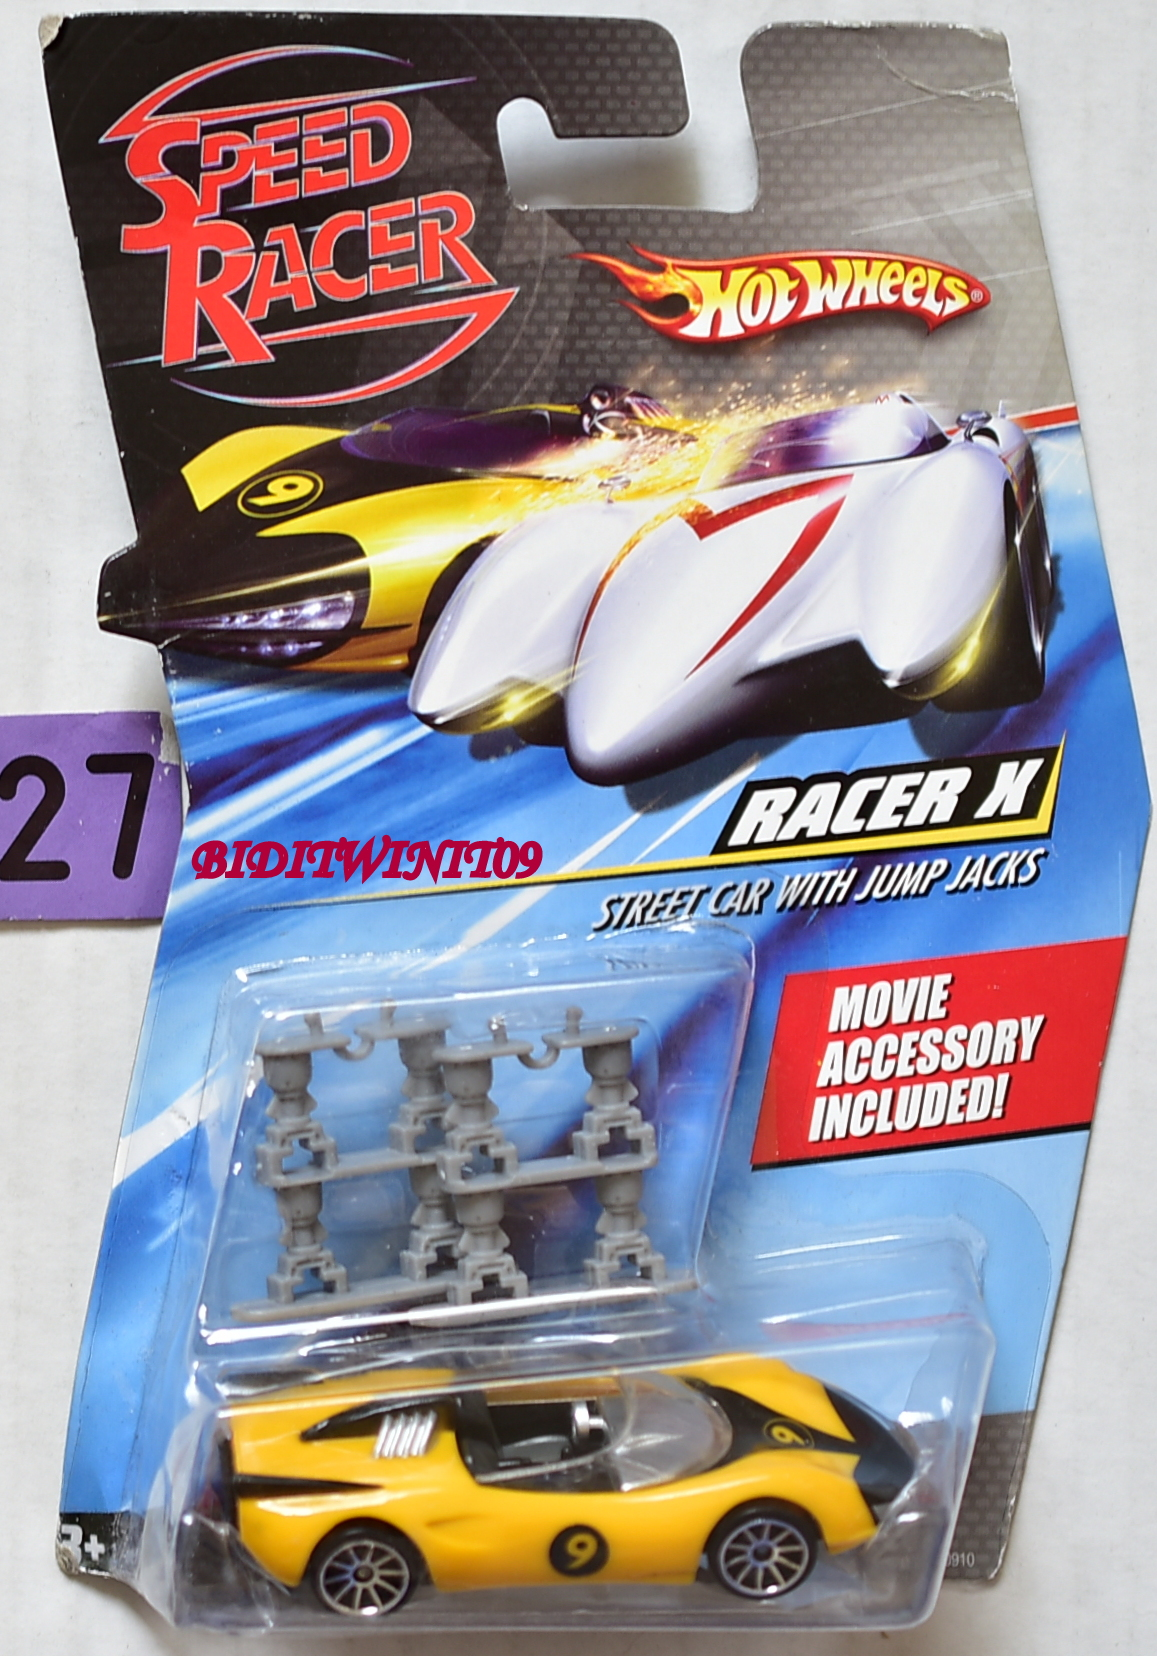 HOT WHEELS SPEED RACER RACER X STREET CAR WITH JUMP JACKS